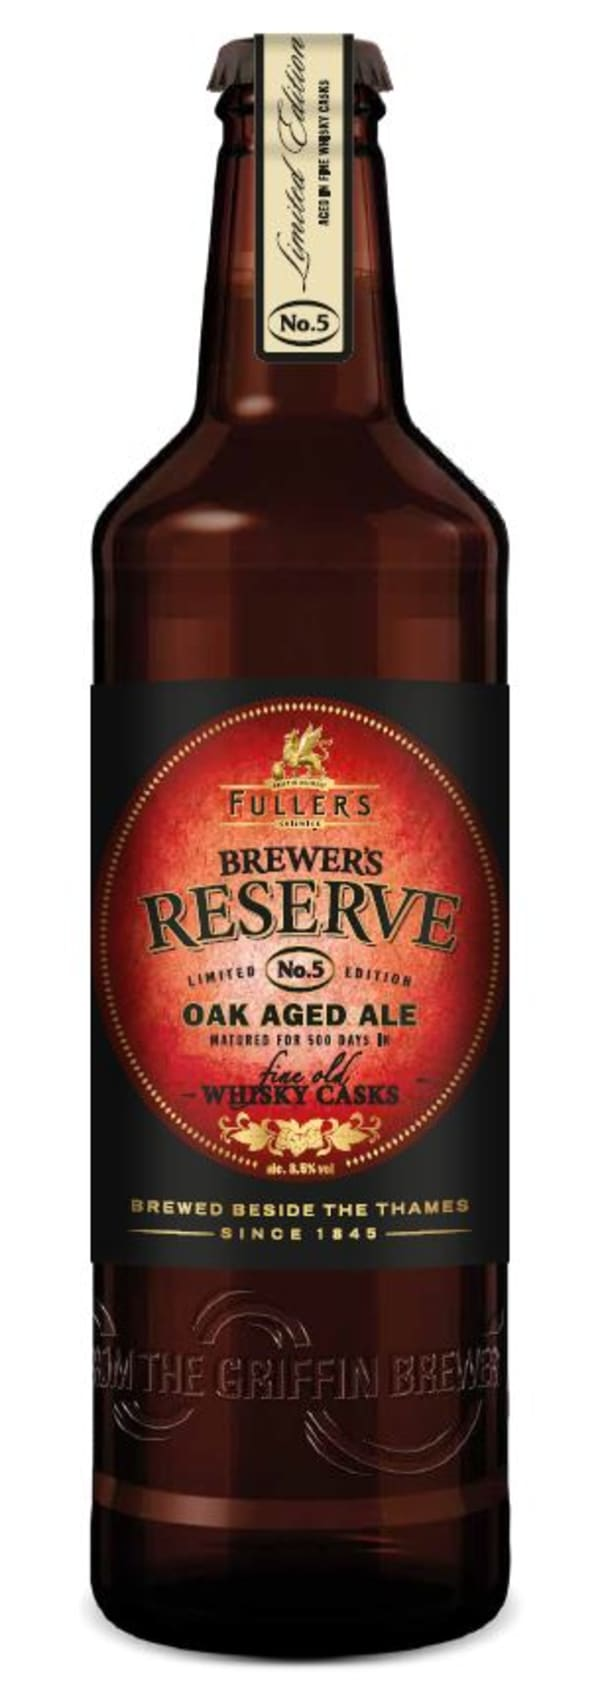 Fuller's Brewer's Reserve No. 5